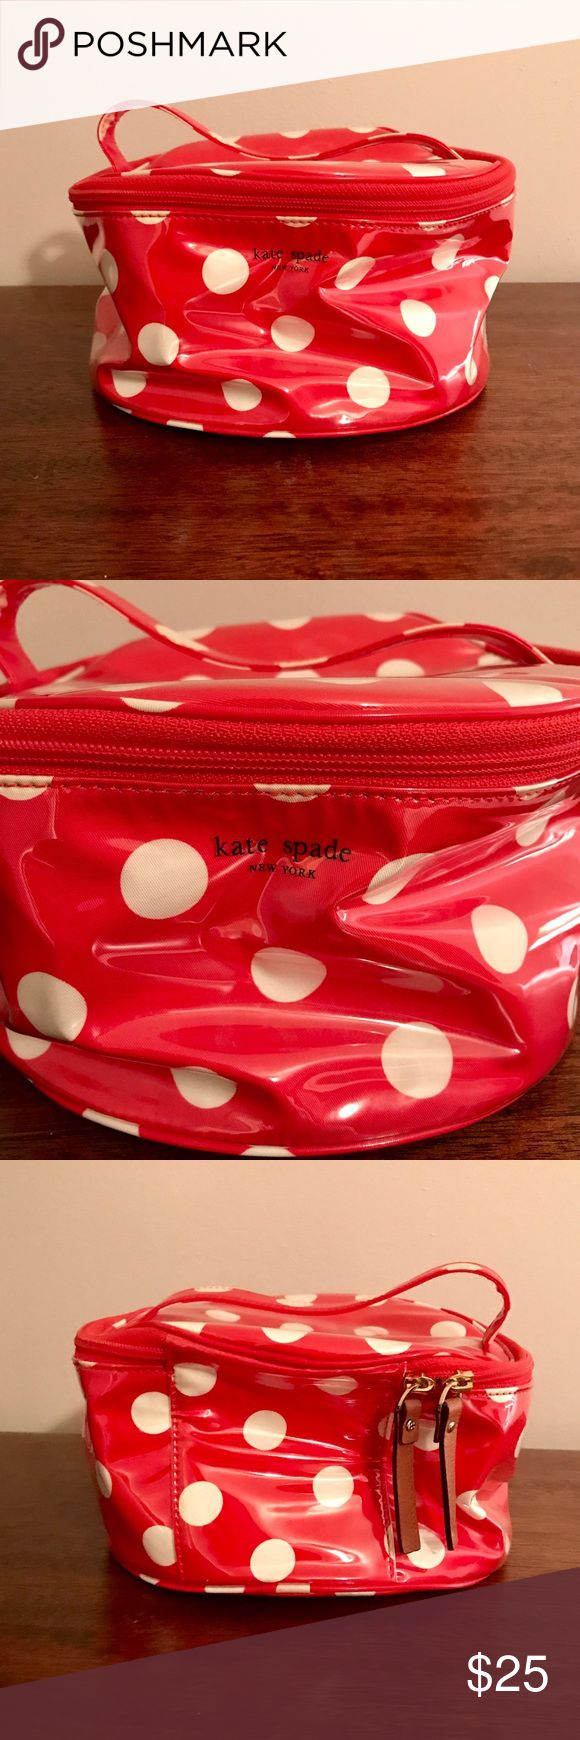 EUC Kate Spade Cosmetic Bag EUC - still has a ton of life left!  Kate Spade Cosmetic Bag  Red and white polka dot exterior  White and black stripe interior  Super cute  Love the bag, but not the price? Make me an offer😊 kate spade Bags Cosmetic Bags & Cases